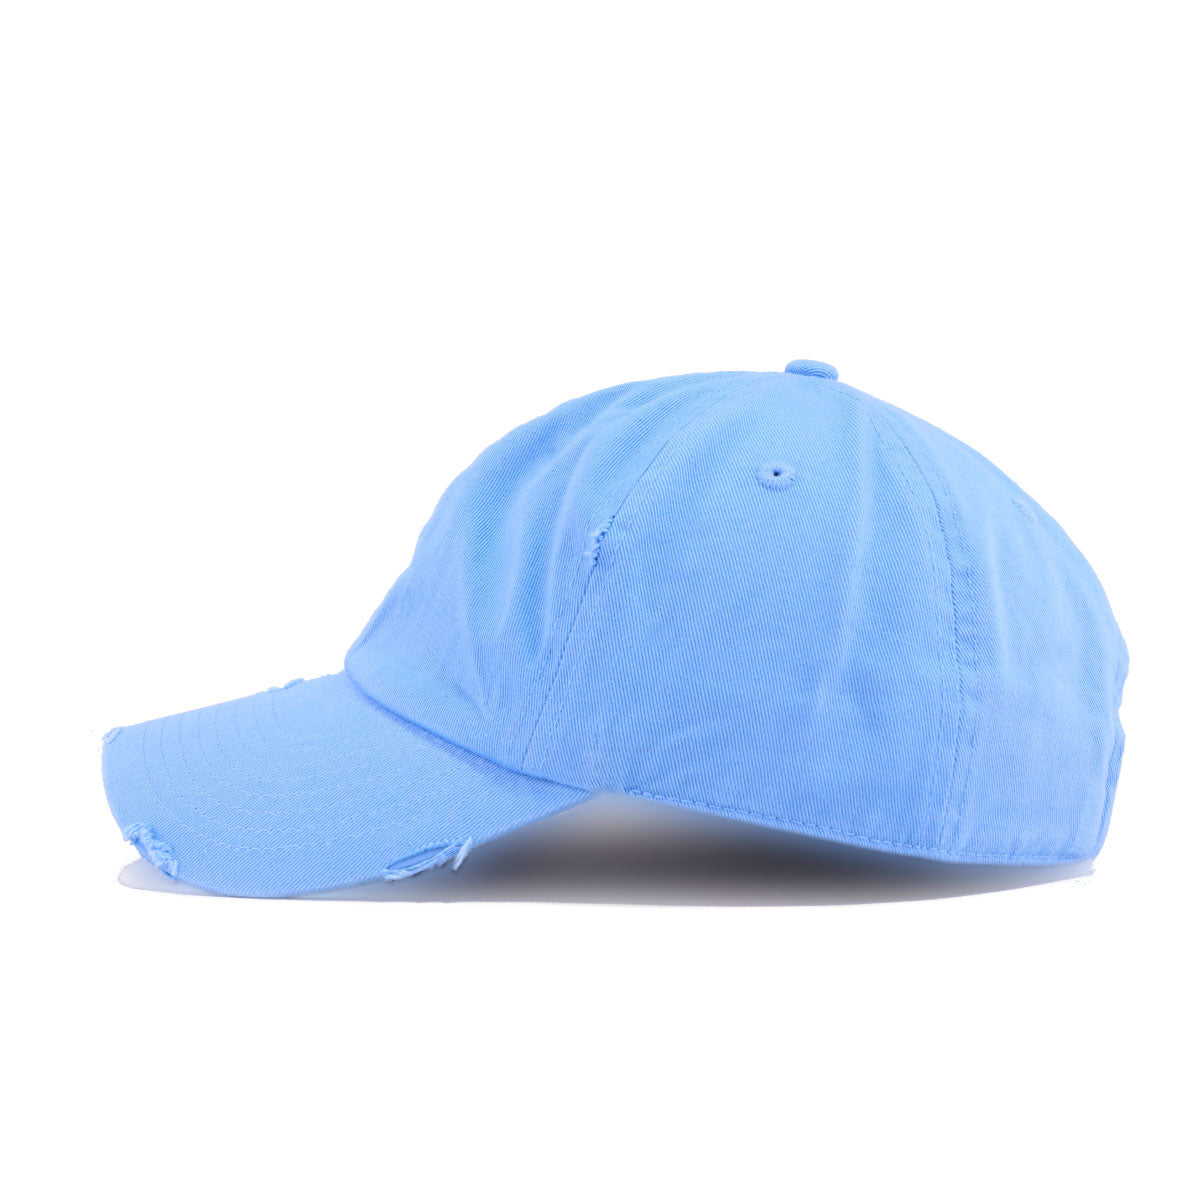 Distressed Sky Blue KBEthos Vintage Dad Hat